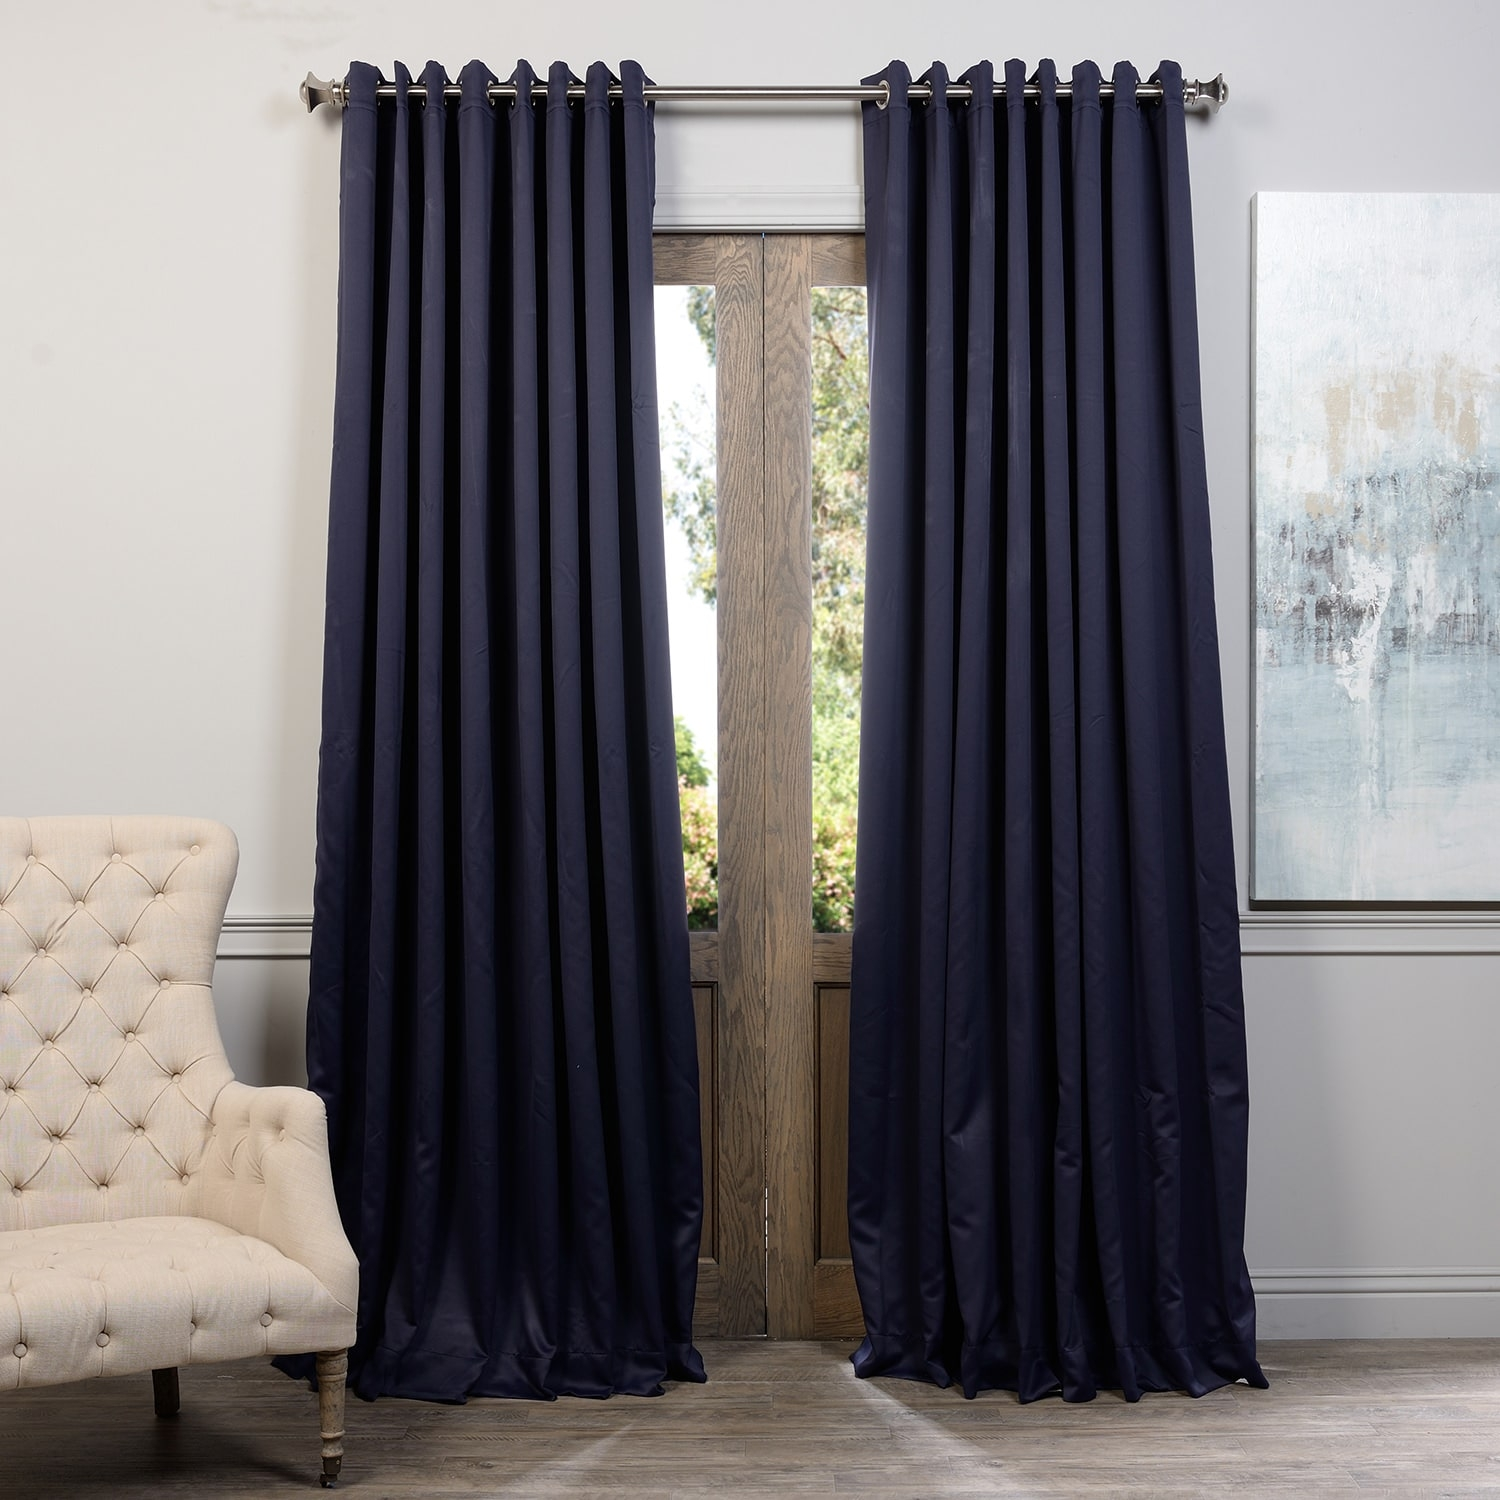 15 Thermal Lined Drapes Curtain Ideas